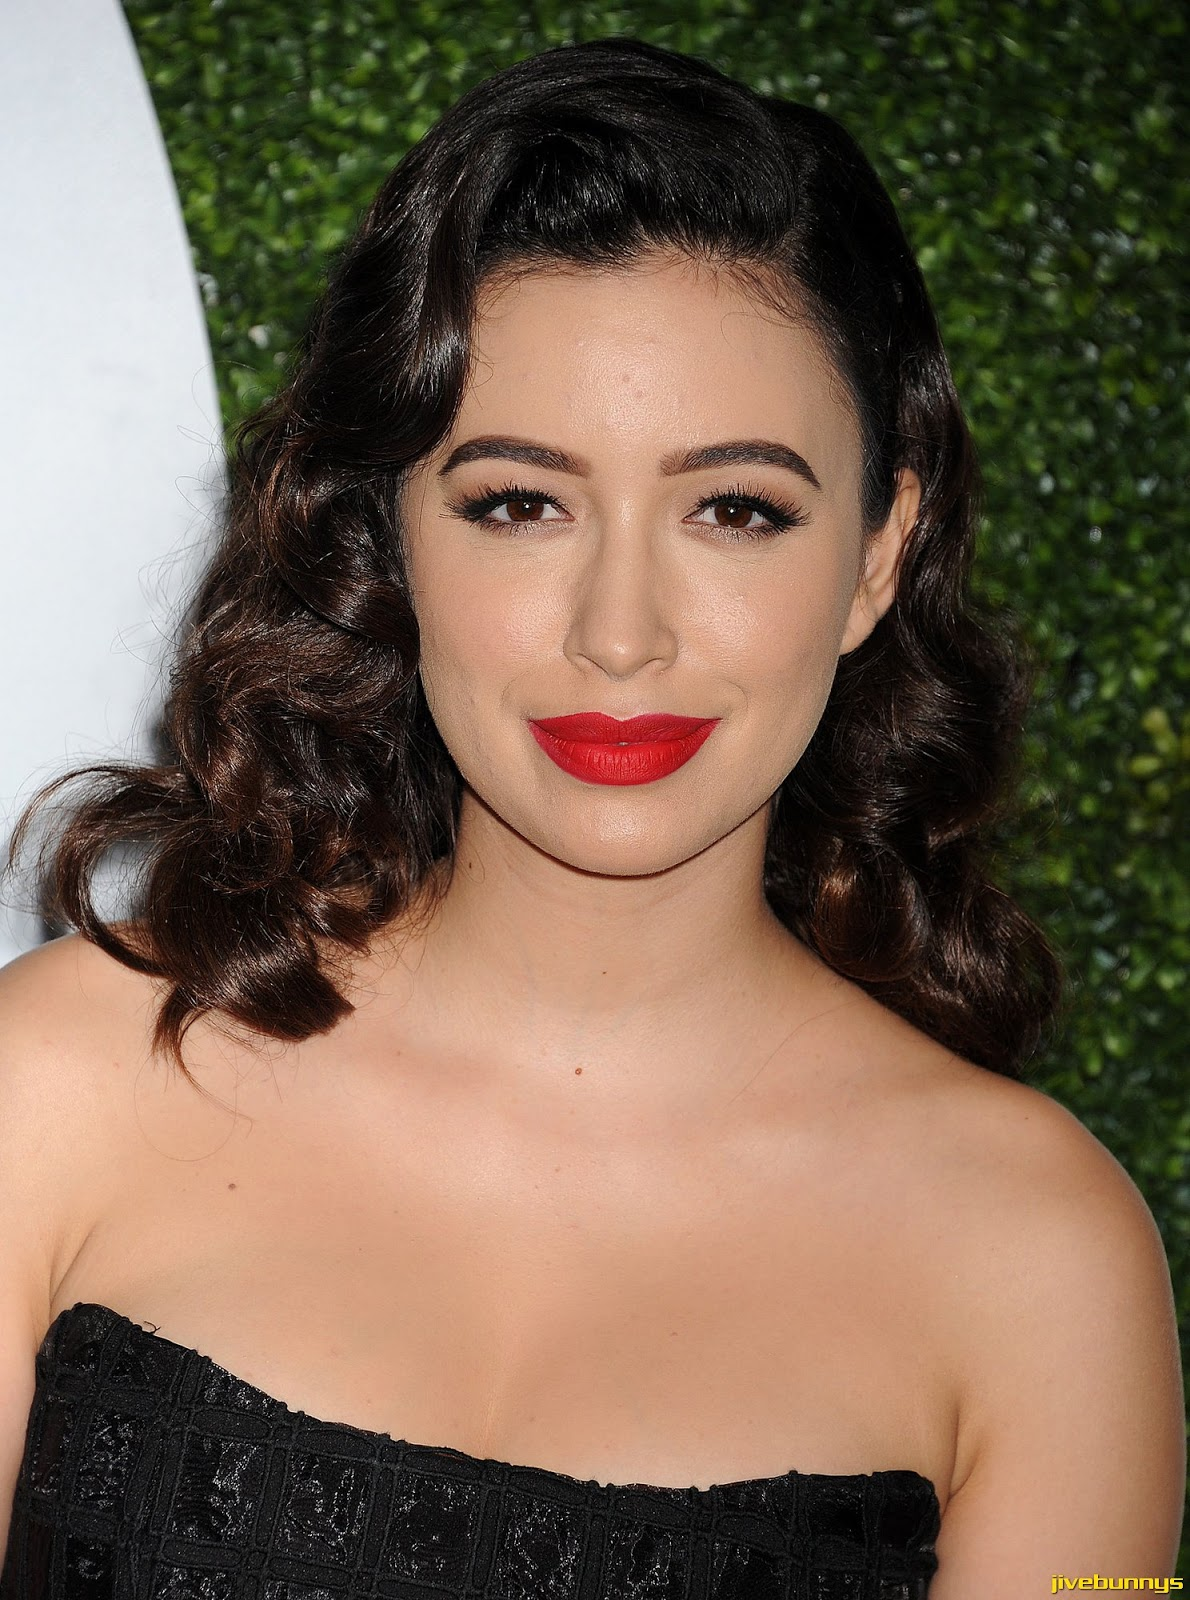 Jivebunnys Female Celebrity Picture Gallery: Christian Serratos Hot ... Beyonce Knowles